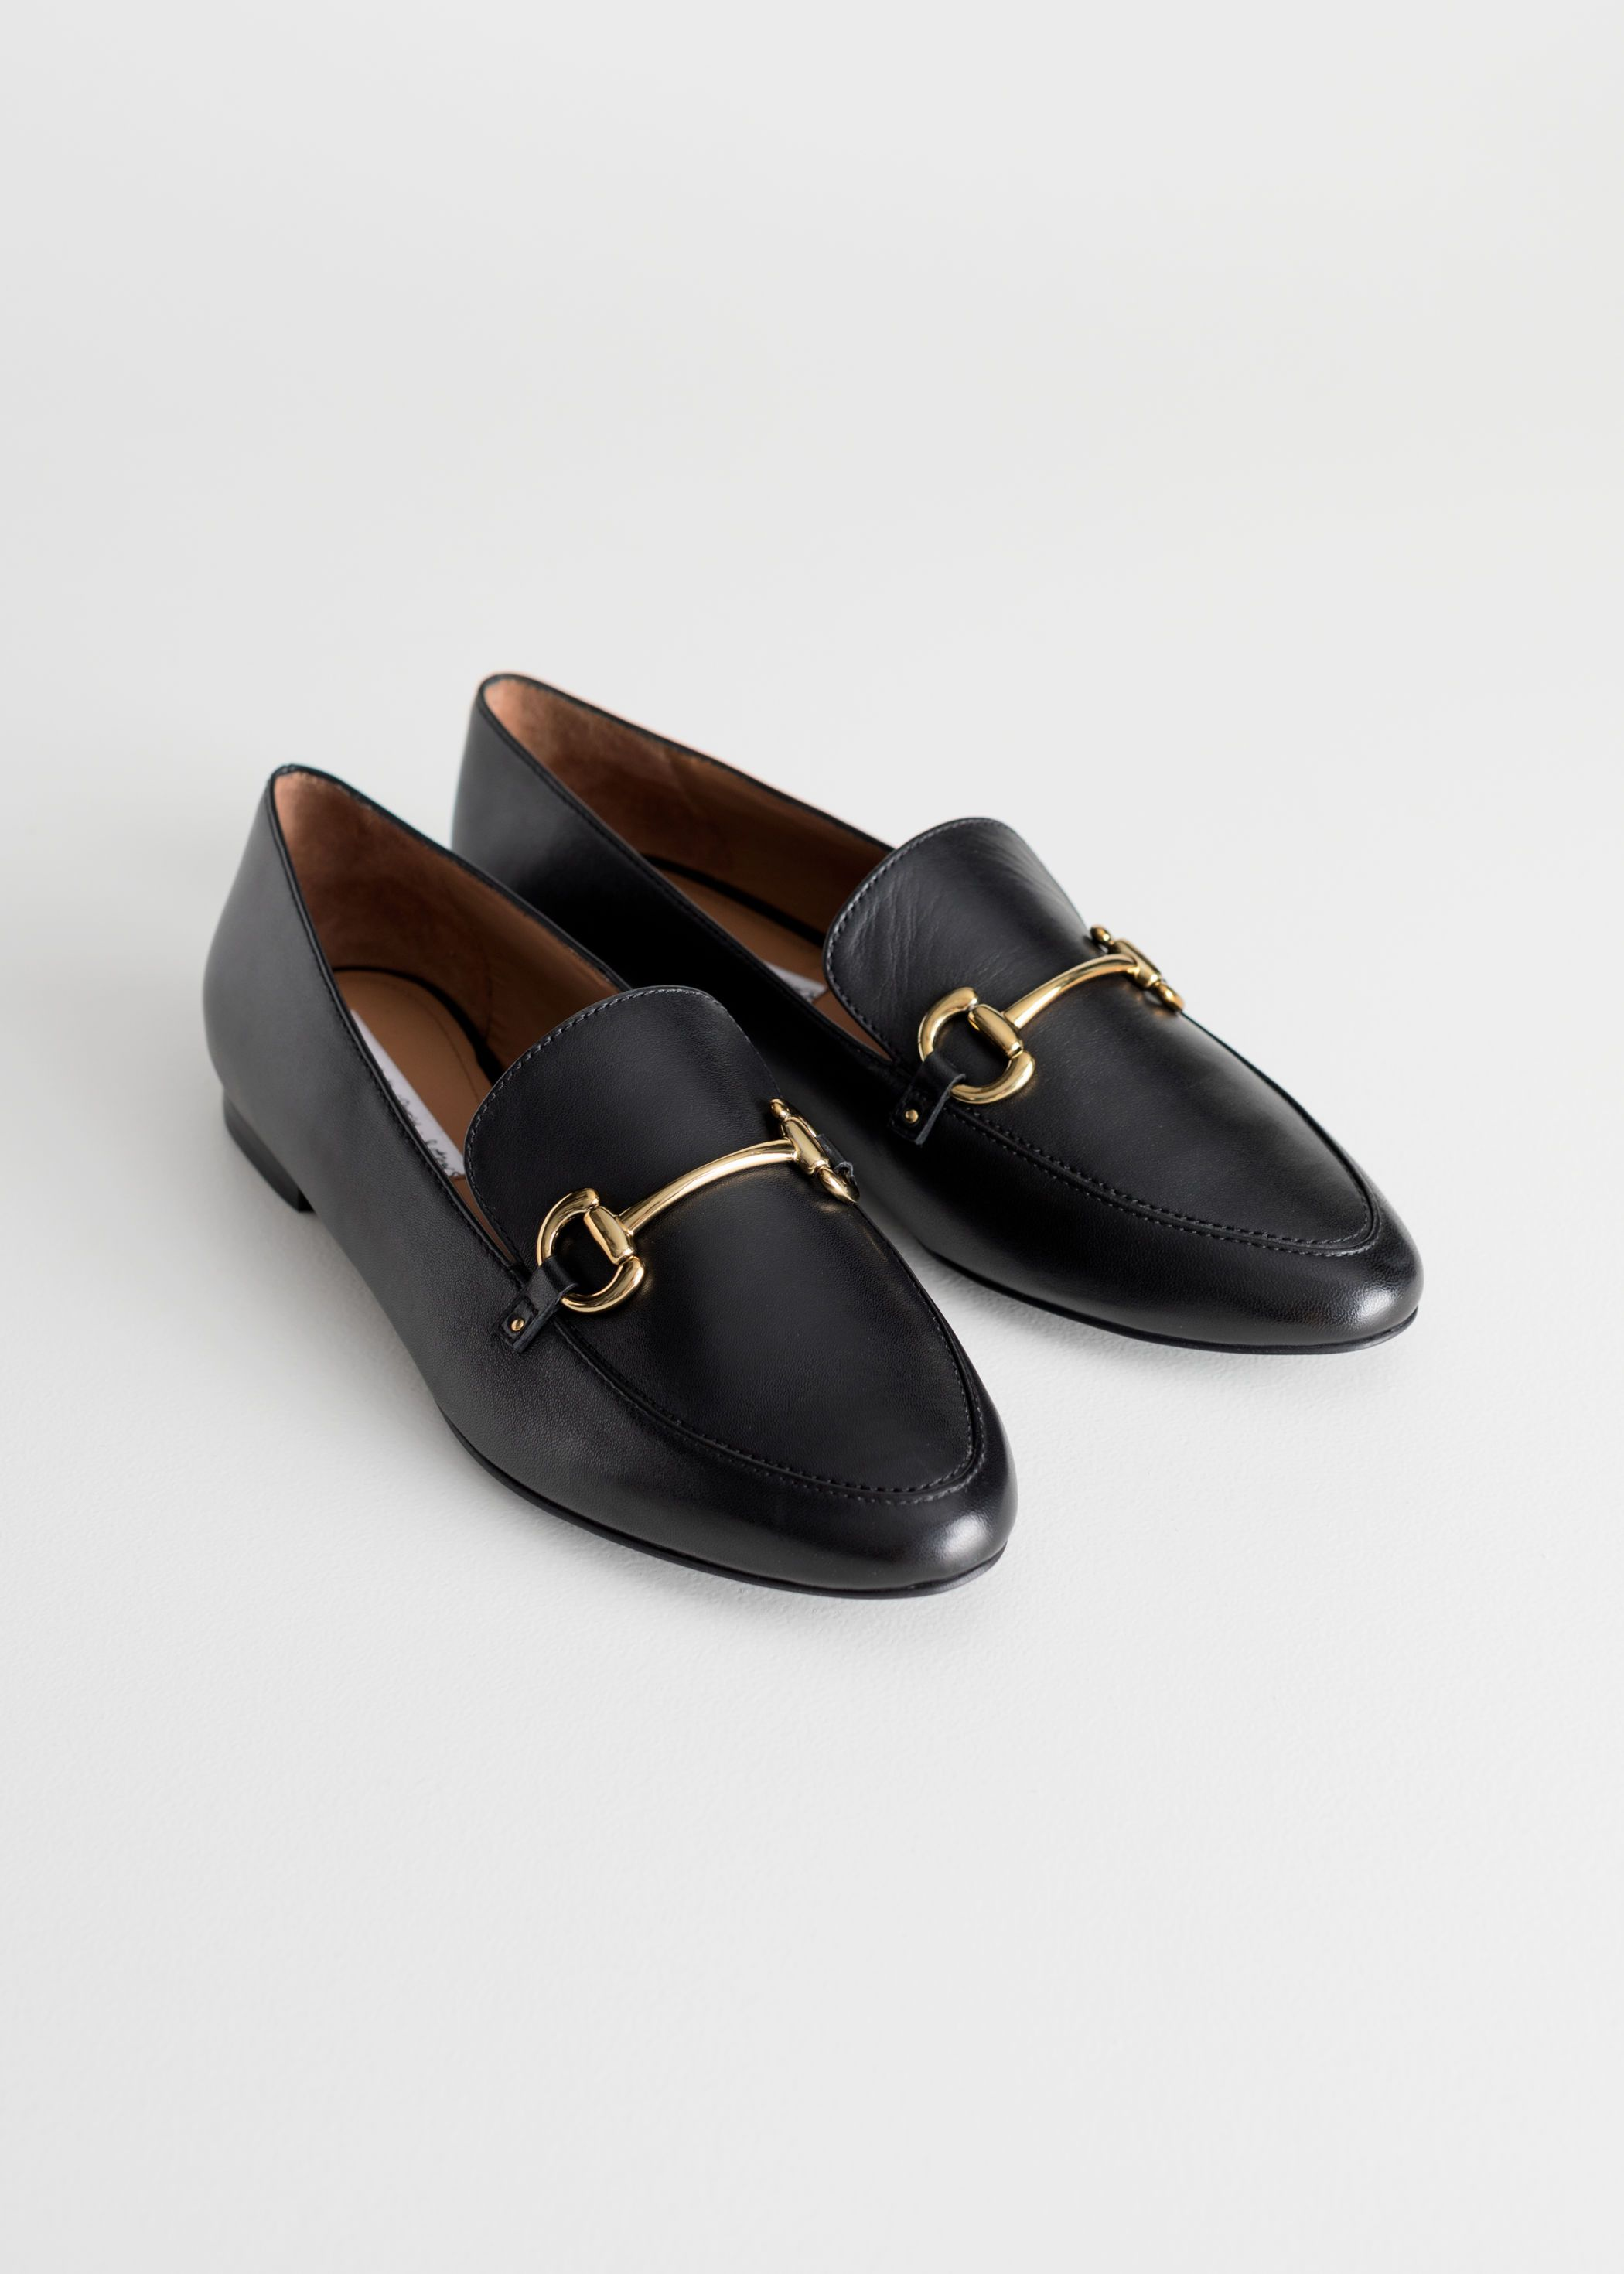 other-stories-equestrian-buckle-loafers